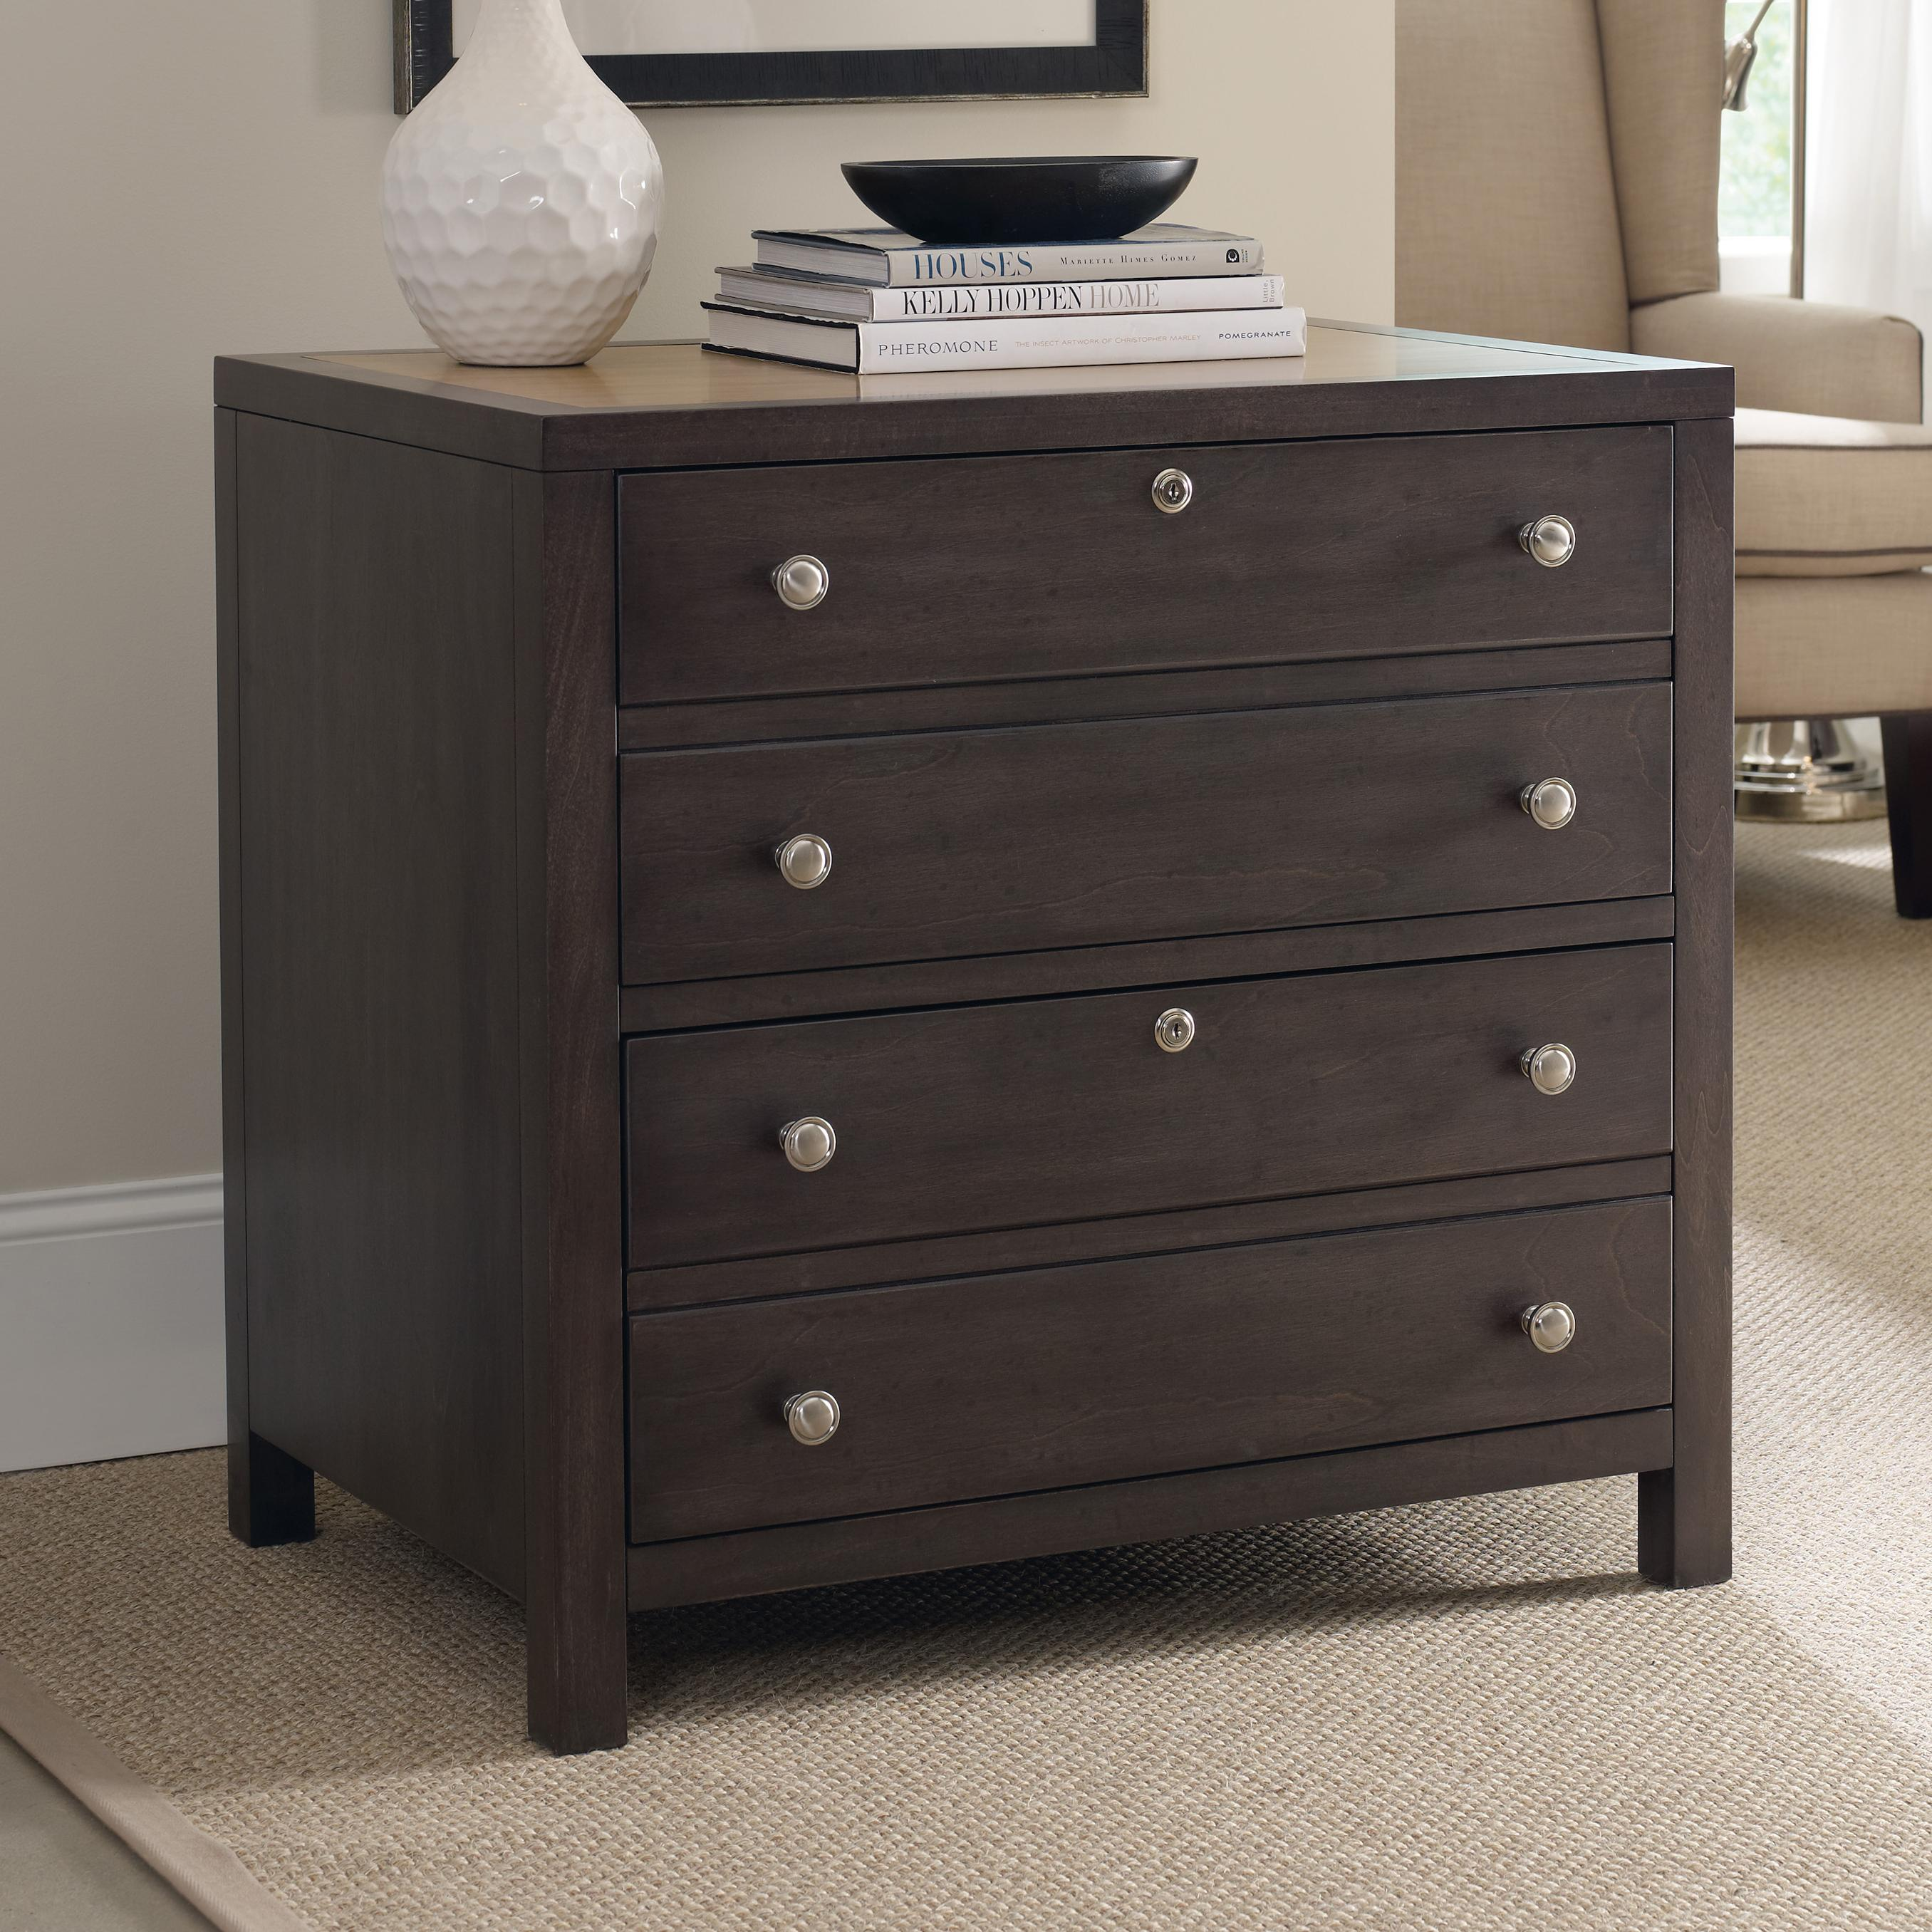 hooker furniture south park lateral file item number - Lateral File Cabinets